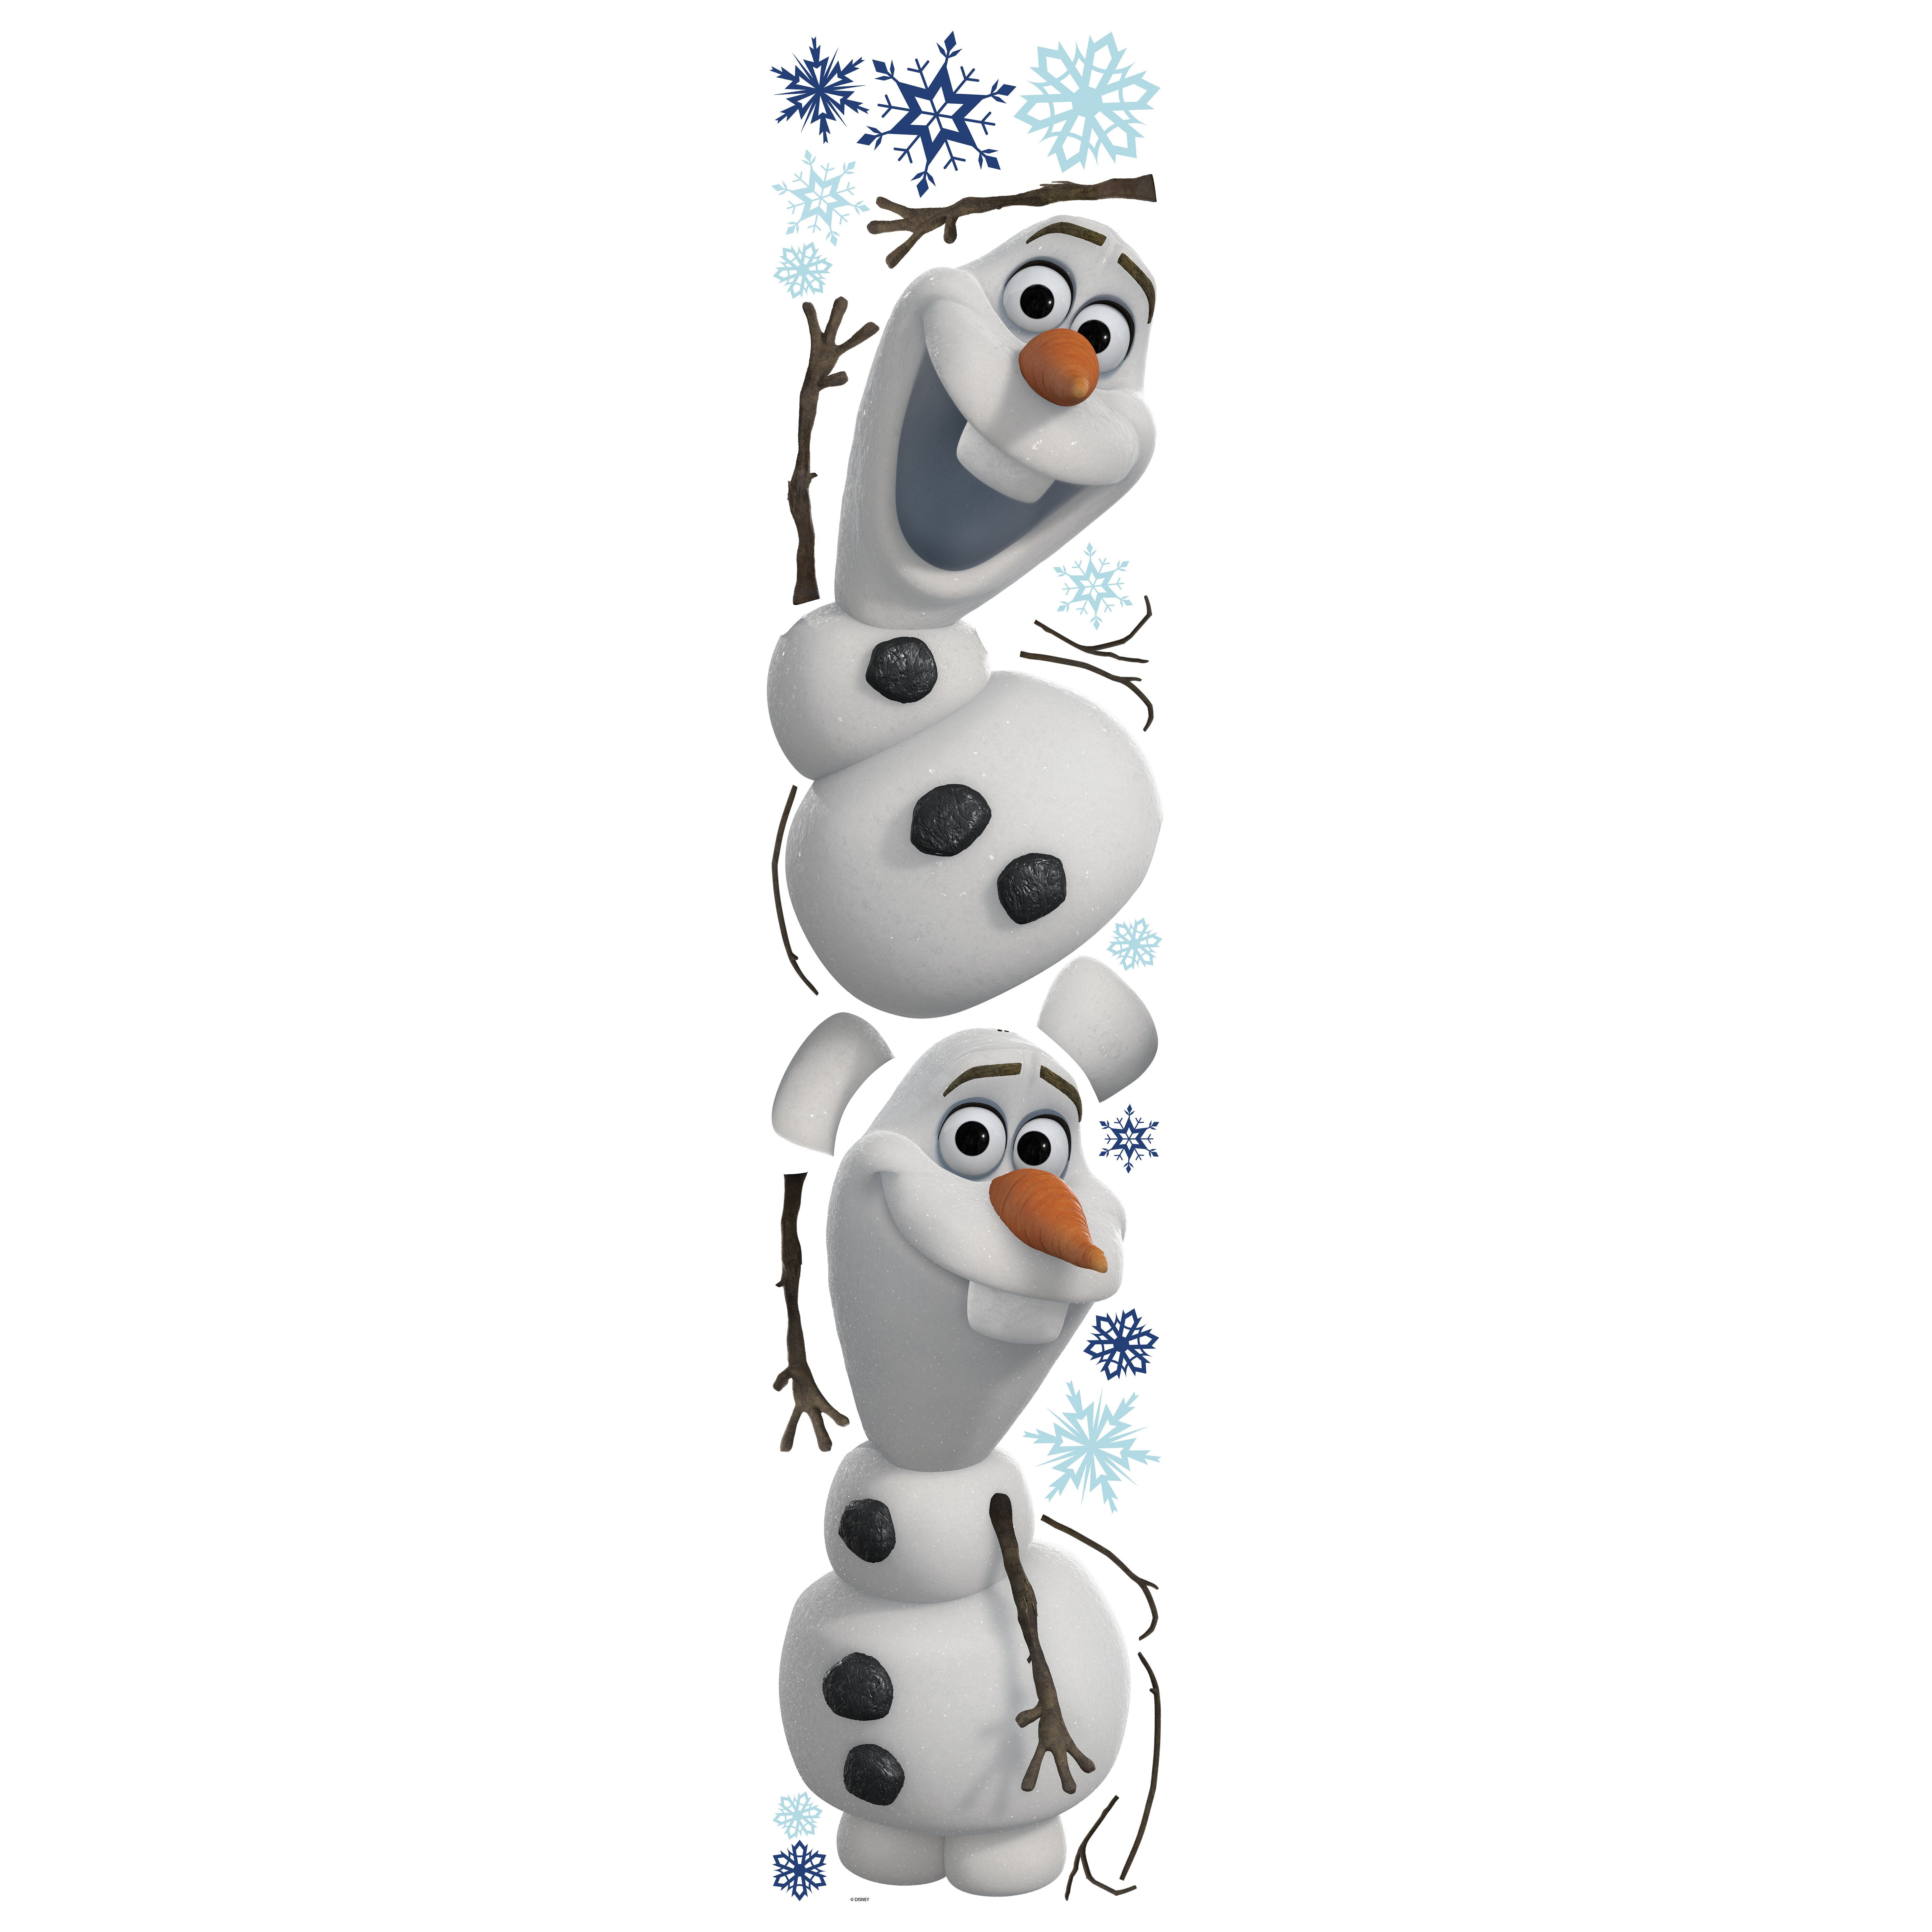 Room Mates Popular Characters Frozen Olaf The Snowman Wall